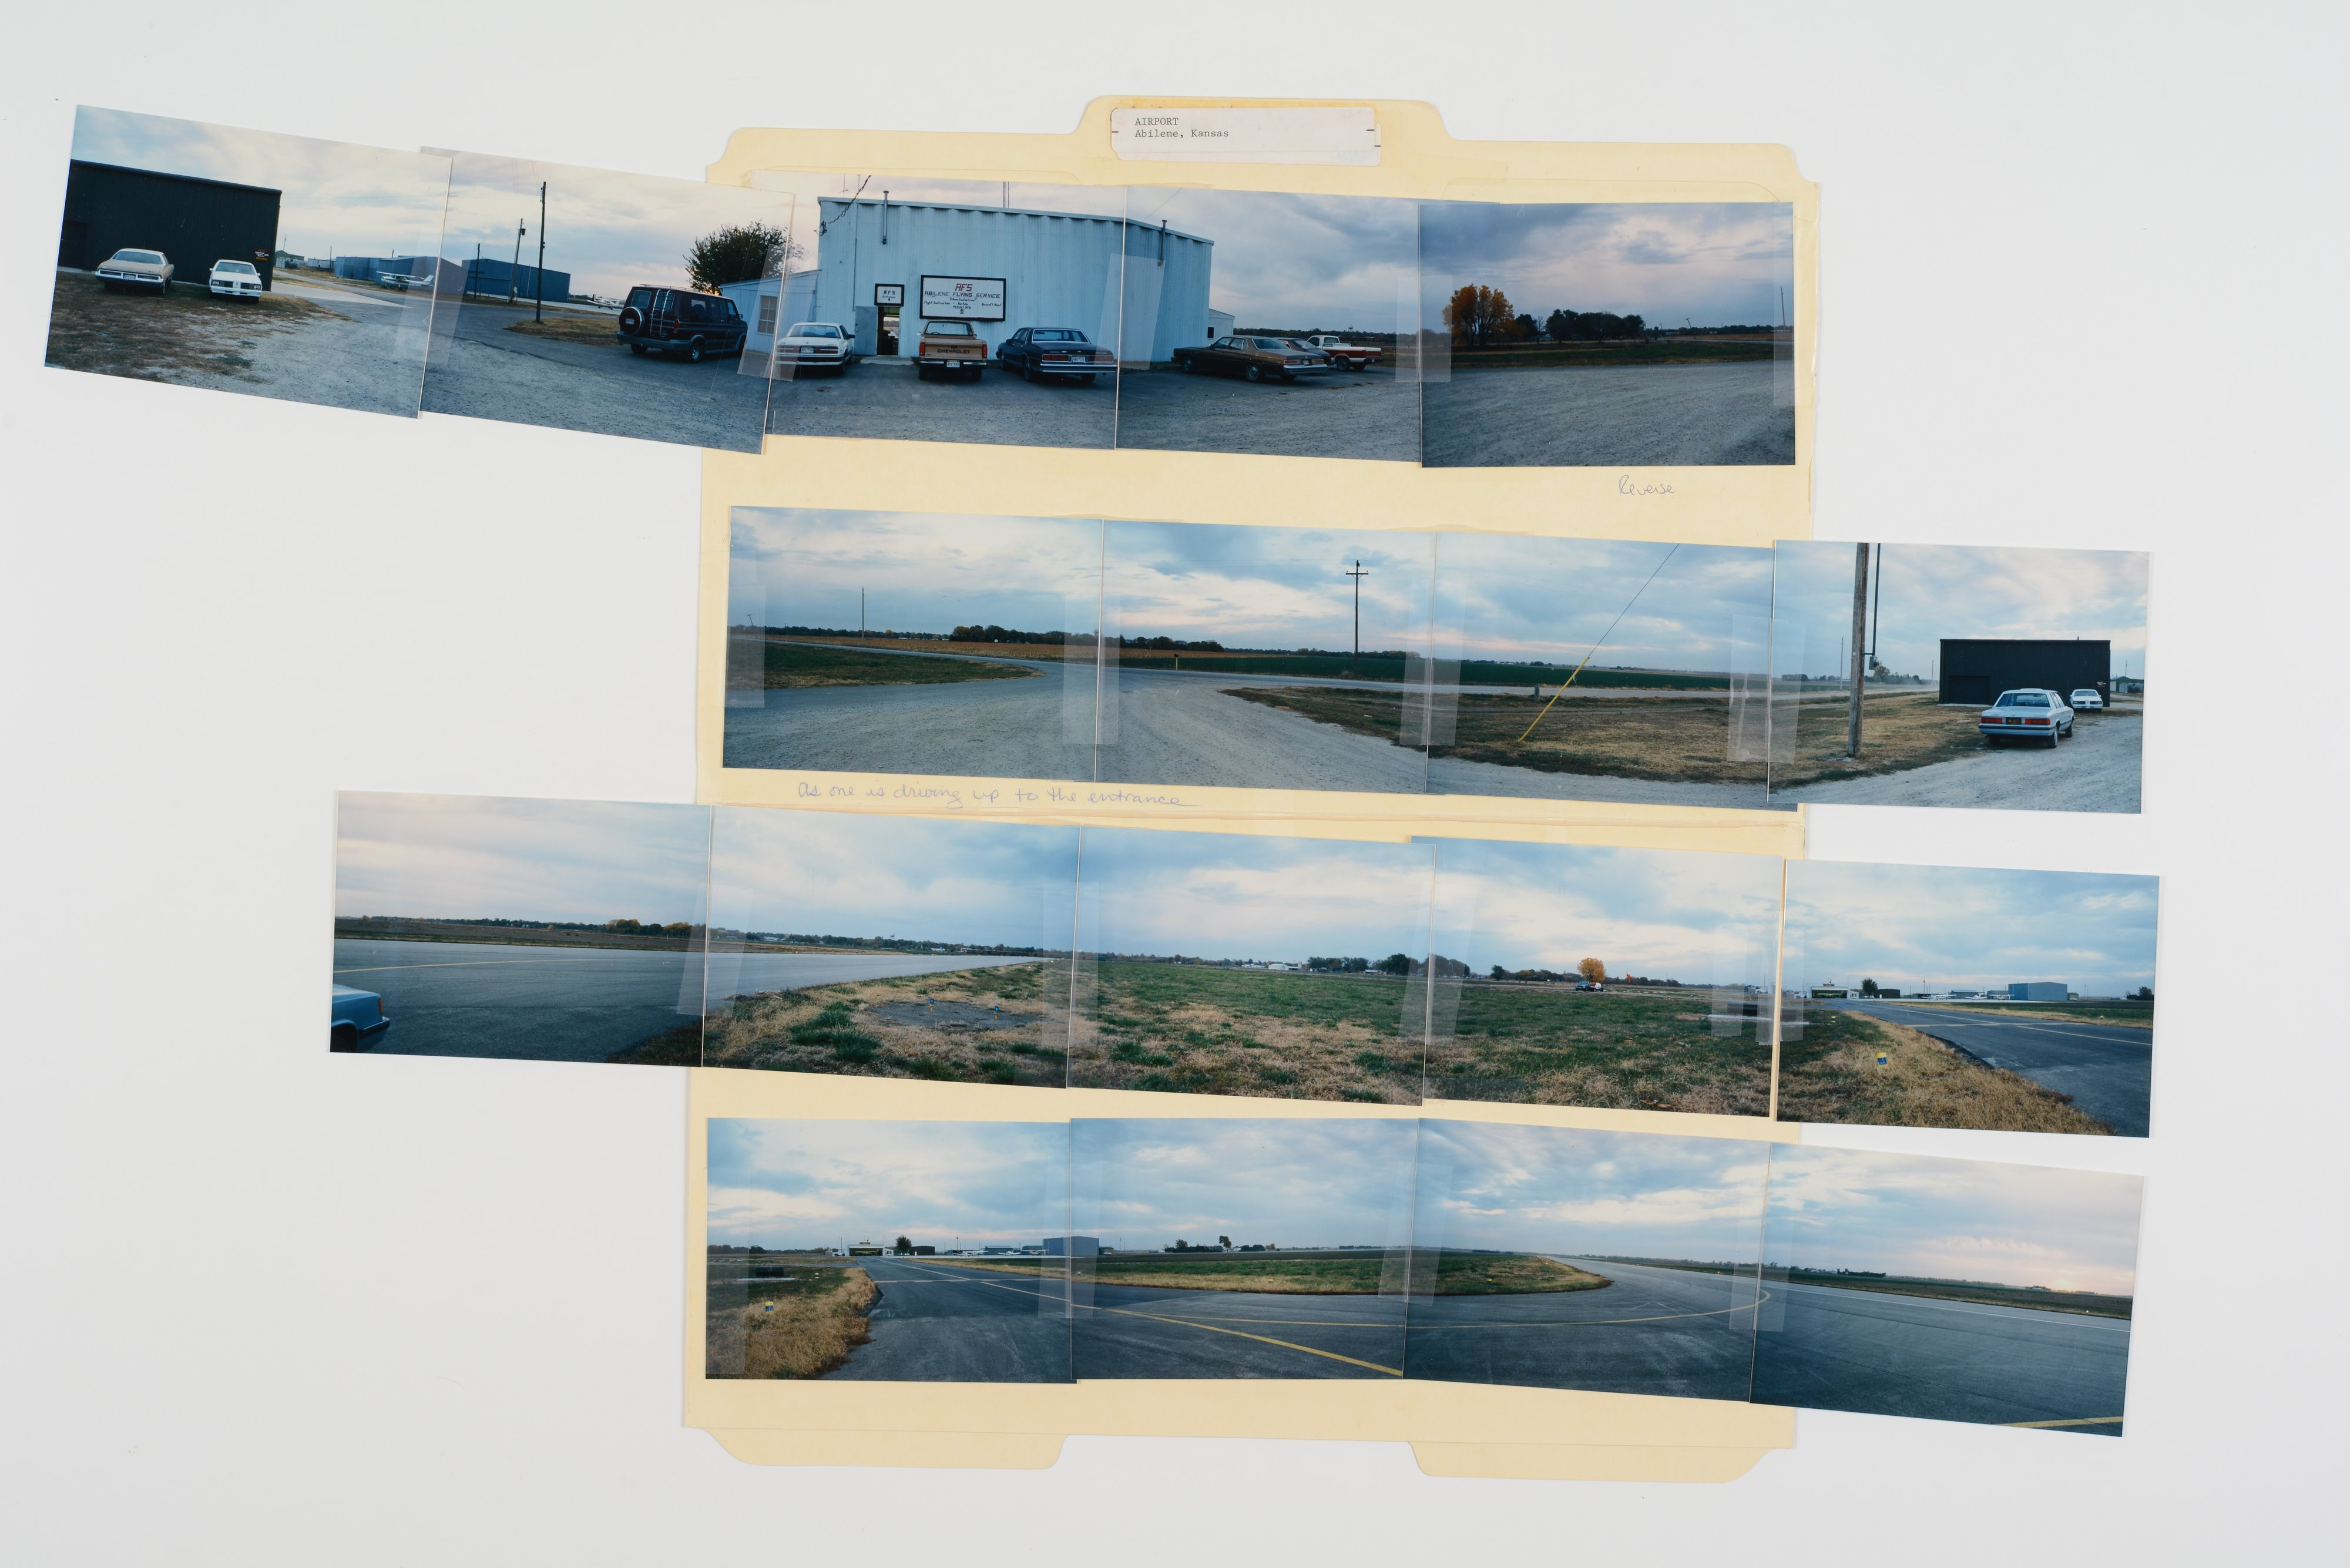 Kansas Film Commission site photographs, subjects airports - attractions - 3